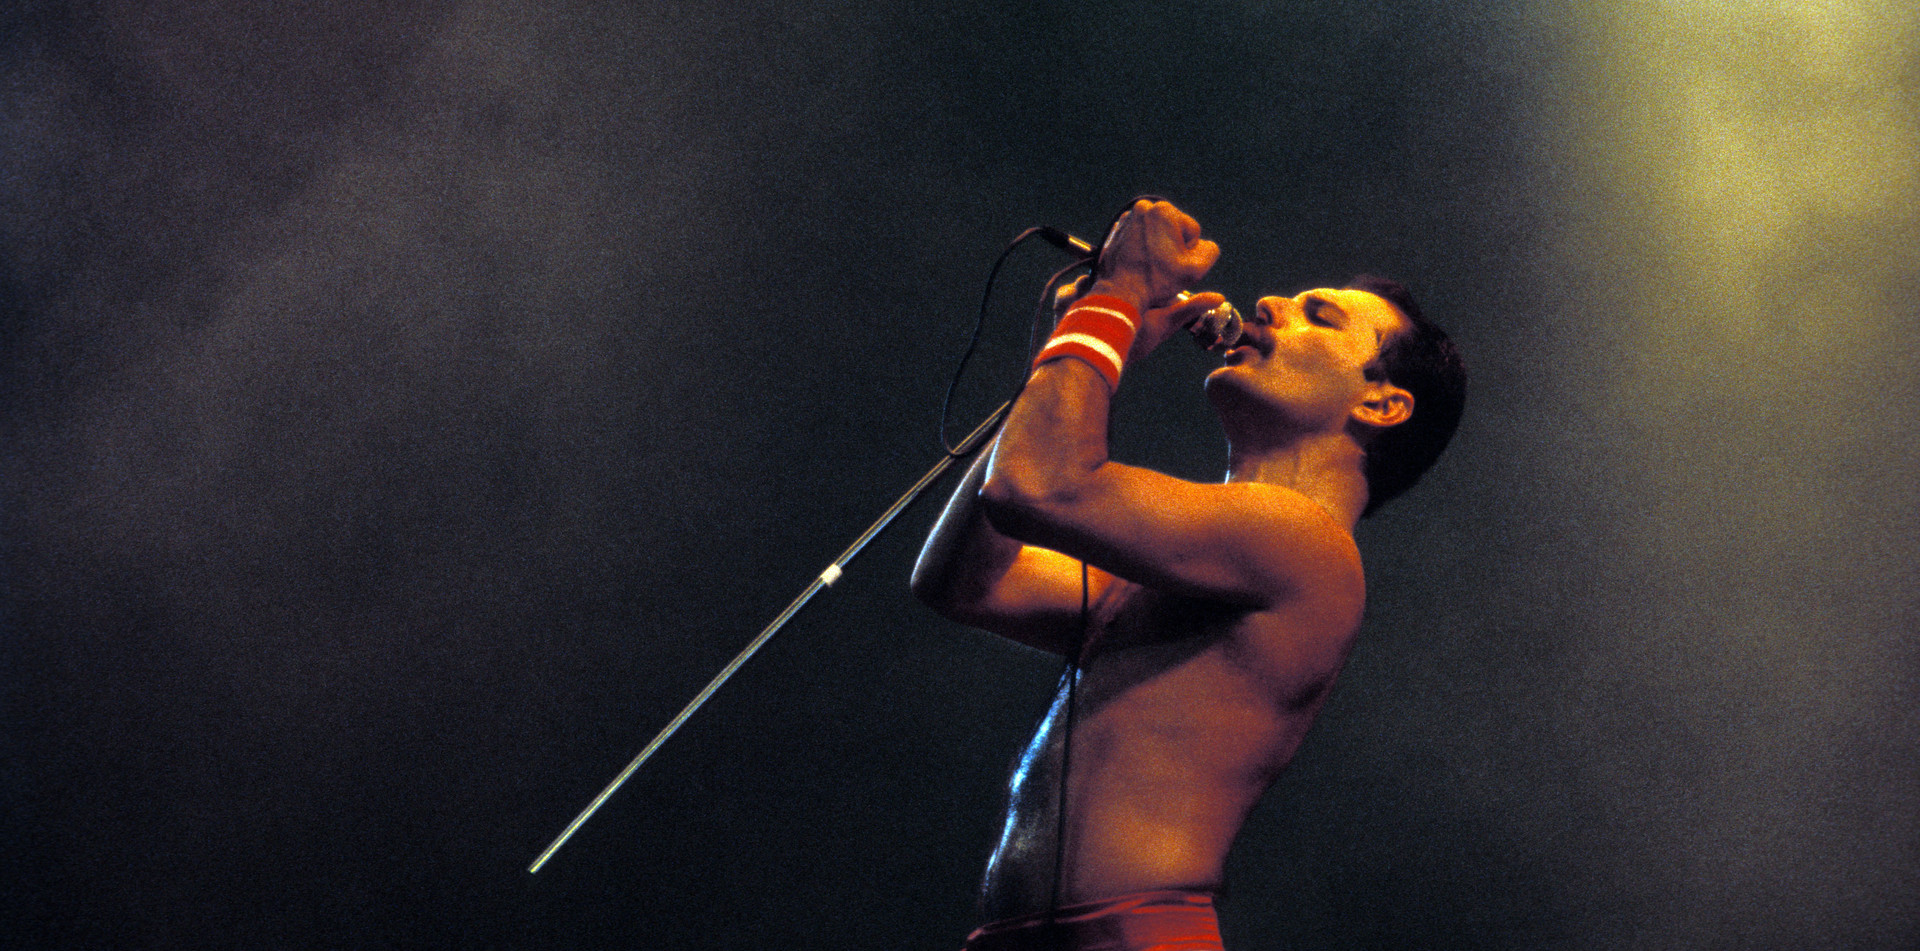 The late Freddy Mercury singing with Queen at Wembley stadium in the 1980s